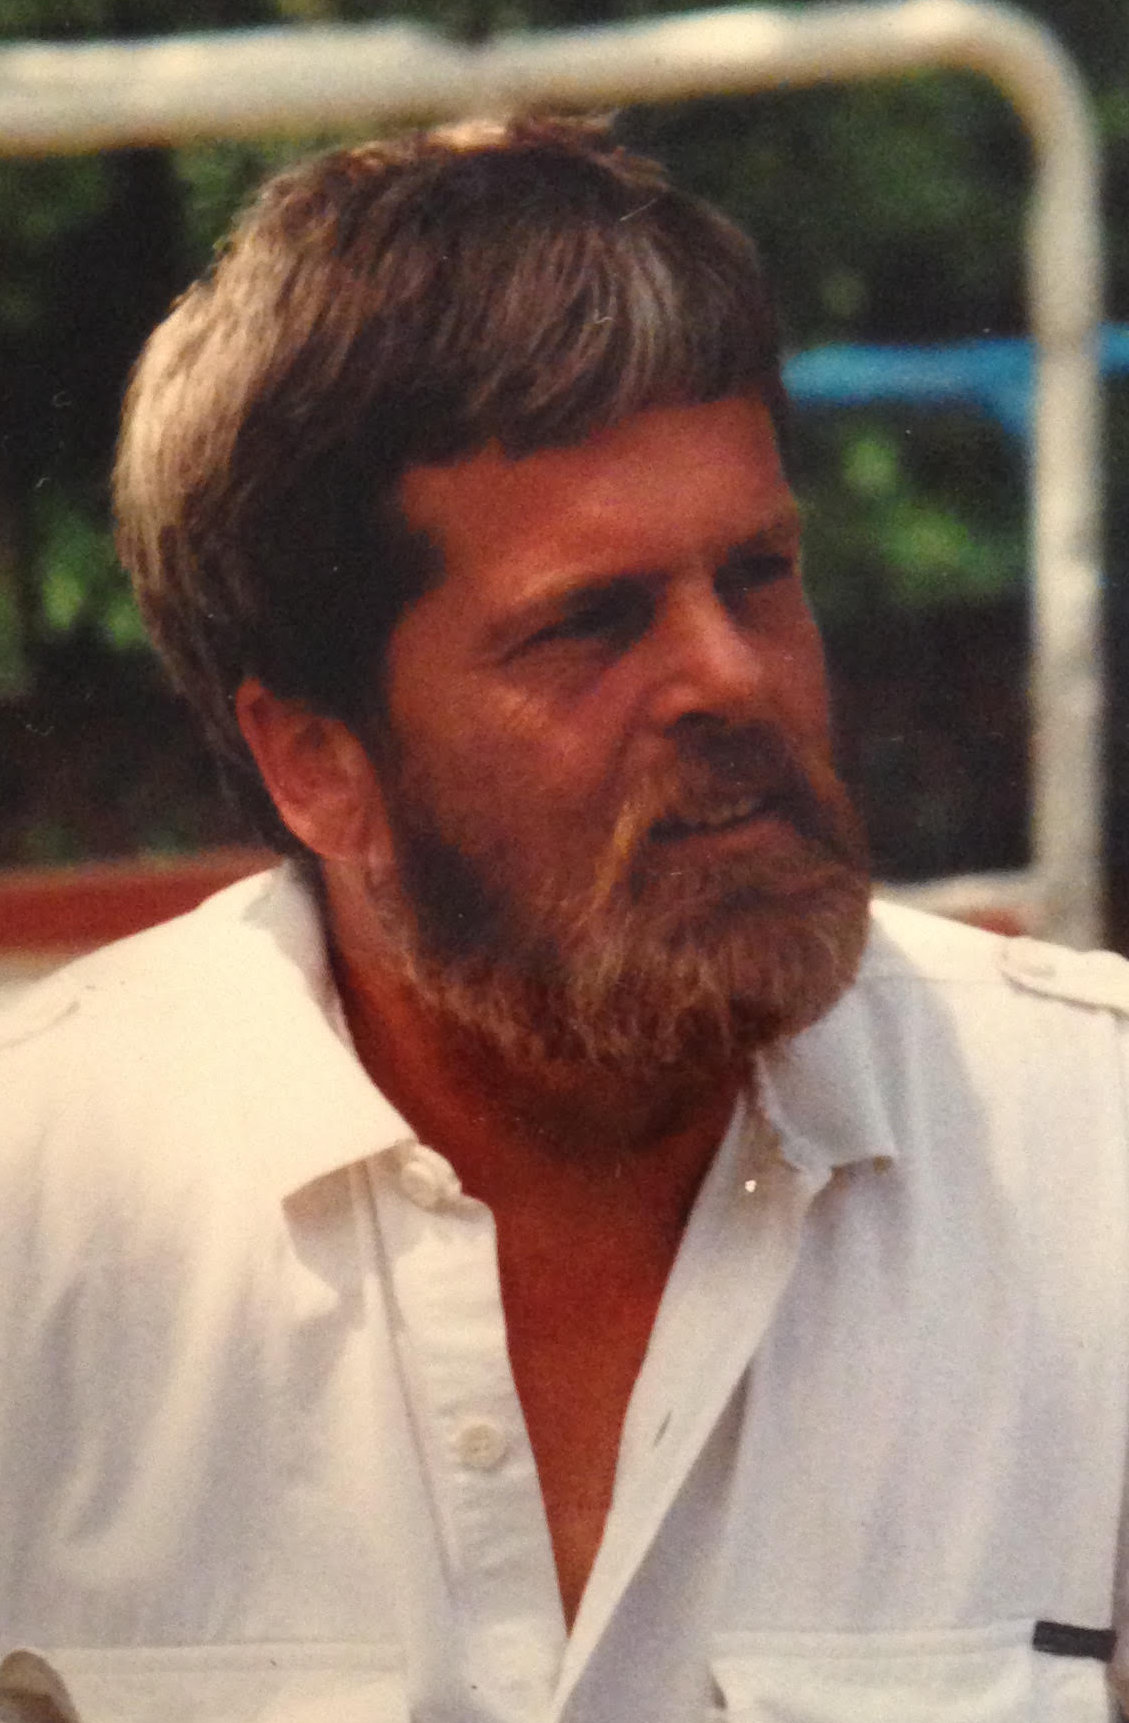 6e0b0f56a3 Don Spencer, 60, of Manteo, NC died on Monday, May 9, 2016 at his home.  Born in Engelhard, NC, he was the son of the late Jimmie Spencer and Clair  Matthews ...